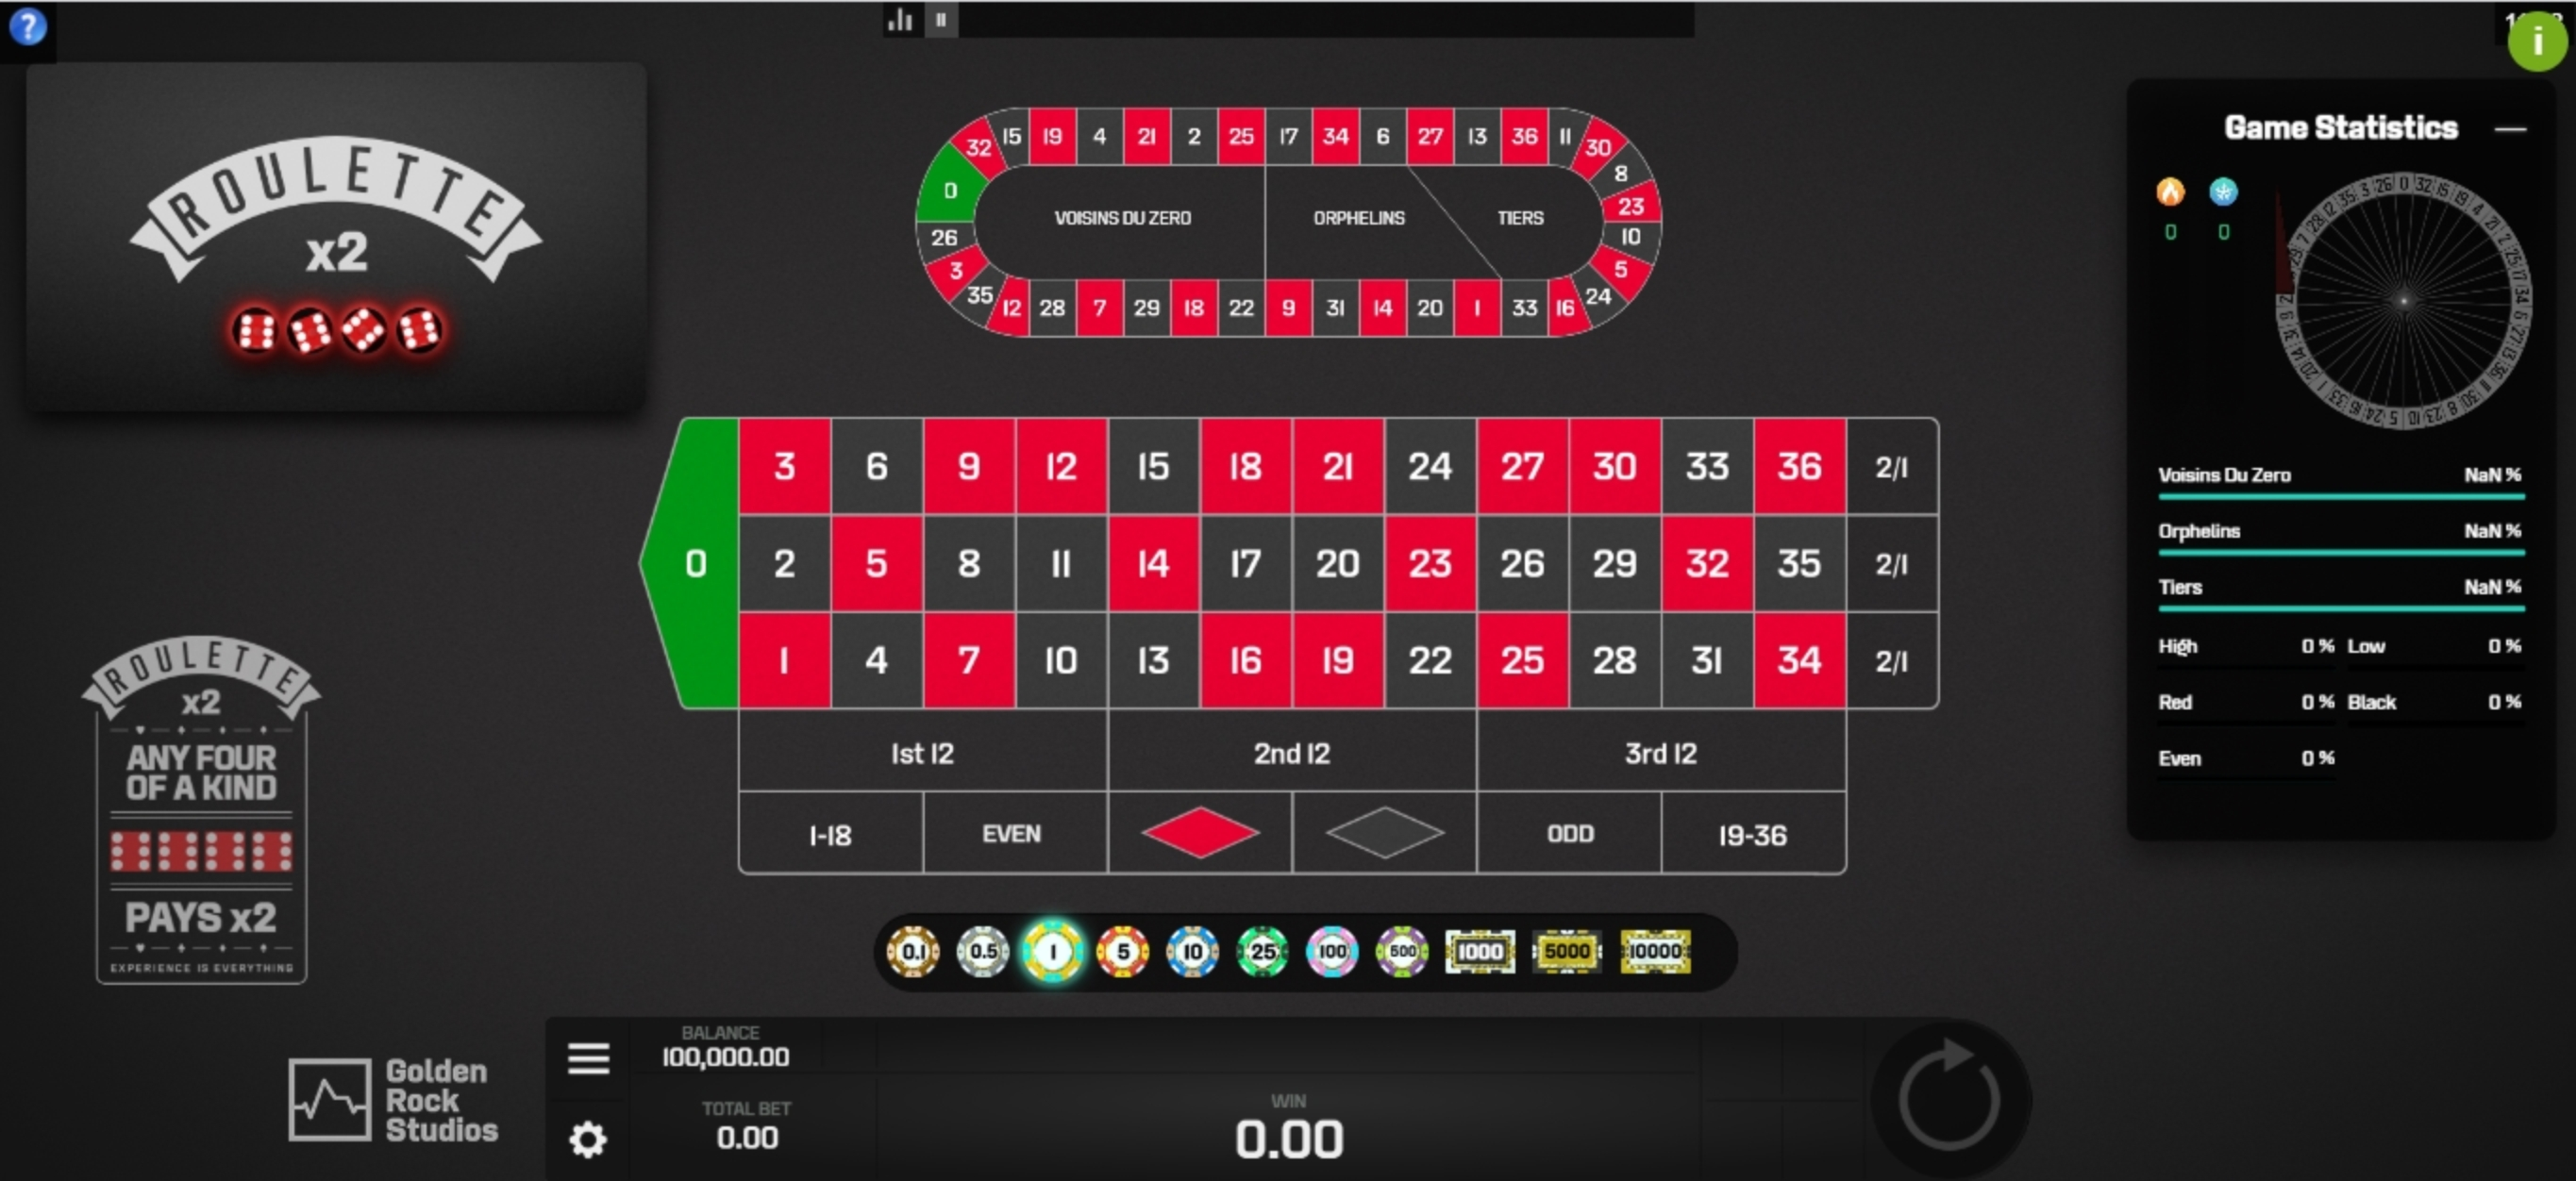 Reels in Roulette X2 Slot Game by Golden Rock Studios